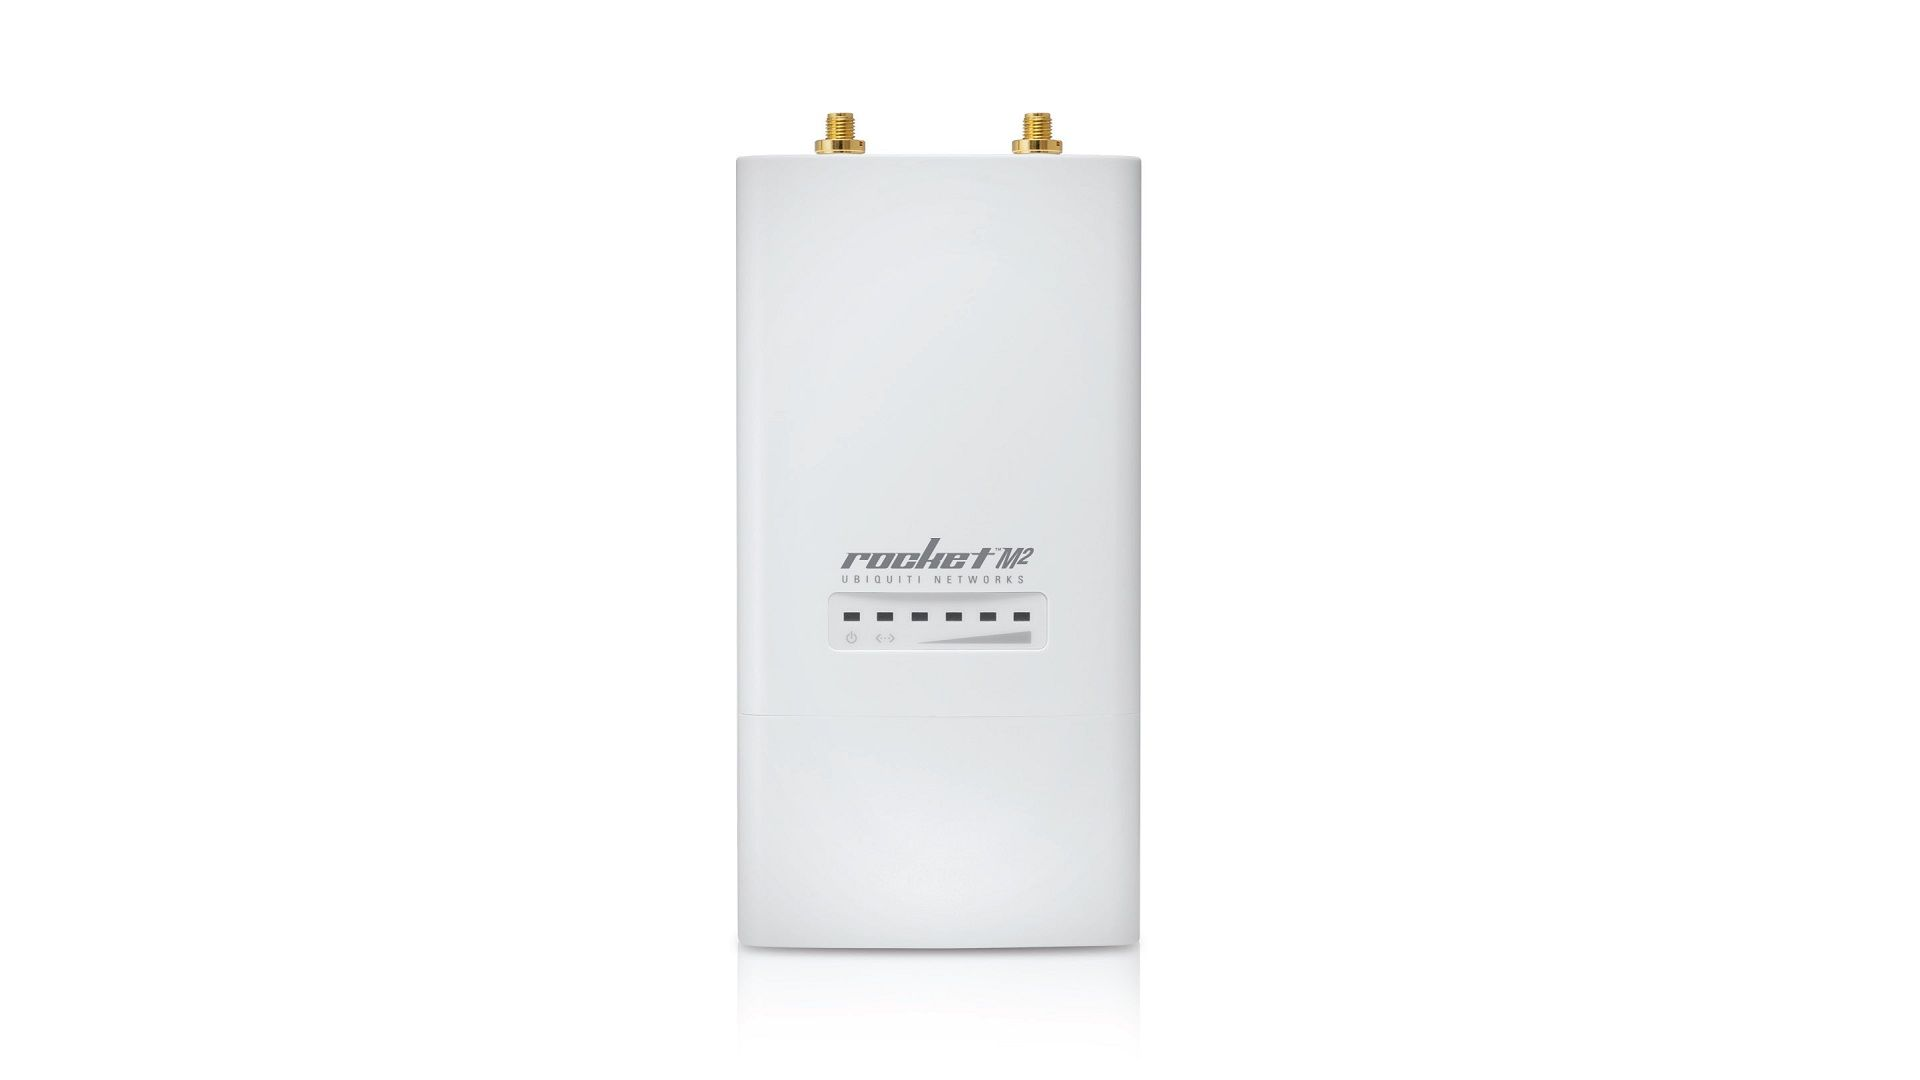 Радиомост Ubiquiti Networks RocketM2